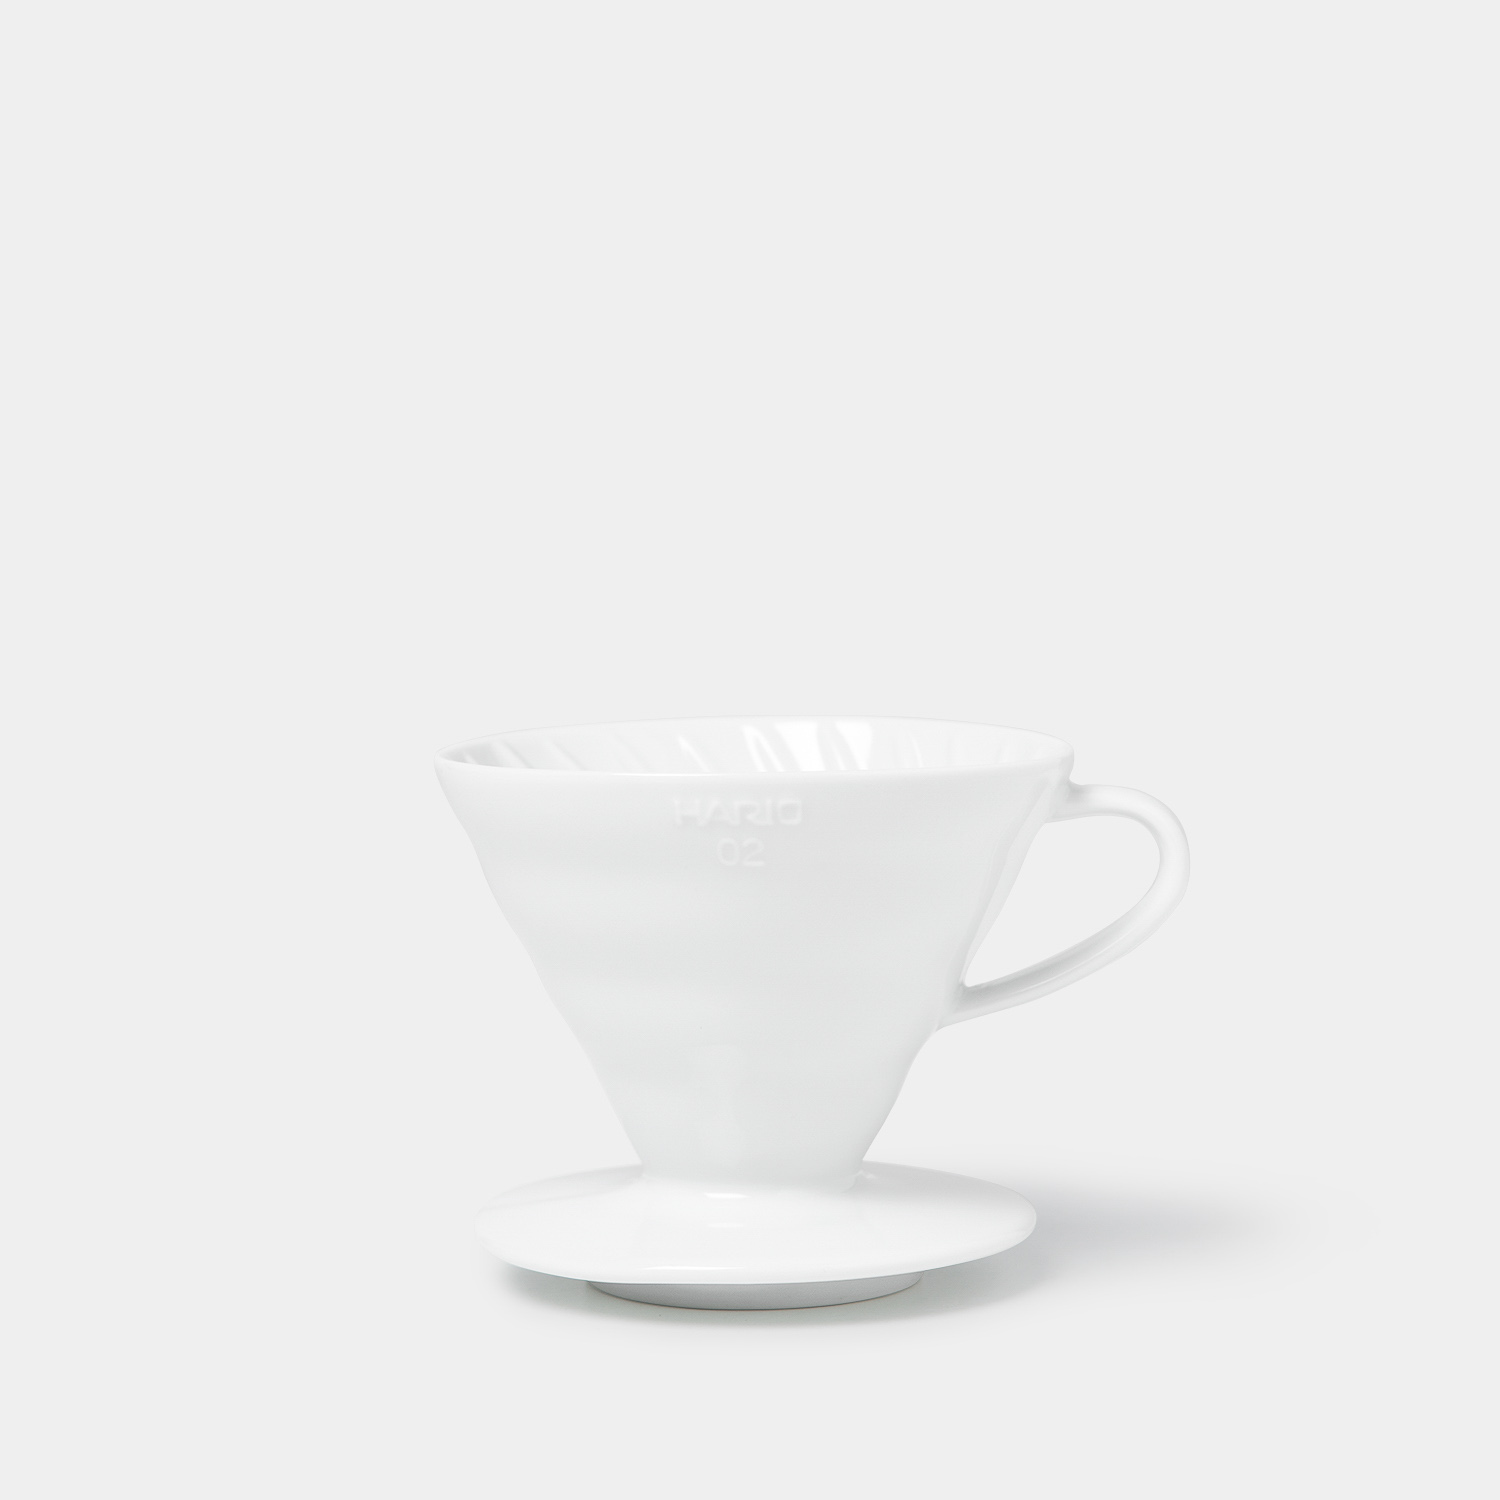 Hario V60 02 coffee dripper